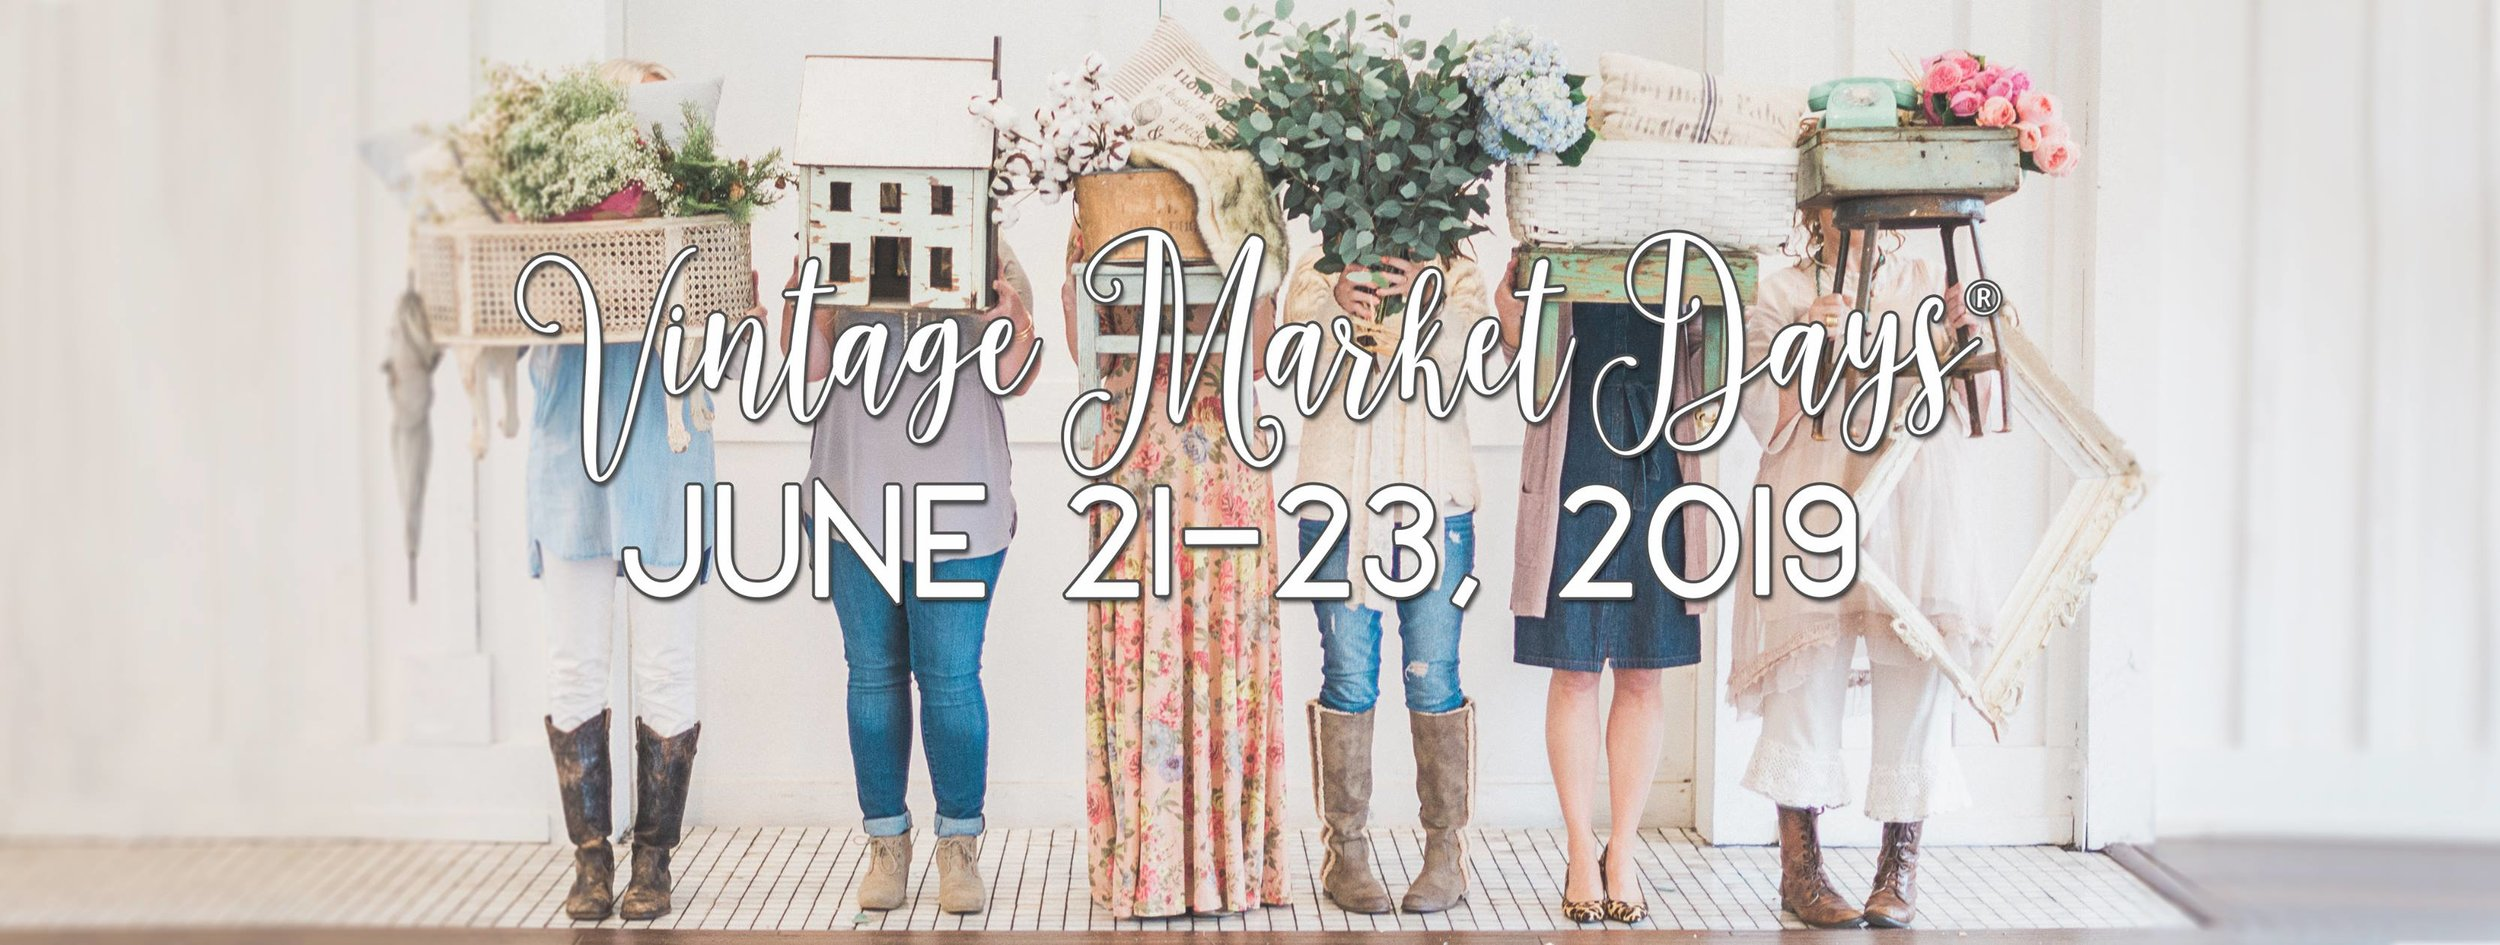 Vintage Market Days of Colorado Springs  1045 Lower Gold Camp Rd., Colorado Springs, Colorado 80905   Event Hours & Admissions   Early Buying Event (3-Day Pass)  Friday, June 21, 2019  10:00 am to 5:00 pm  General Admission (Sat/Sun)  Saturday, June 22, 2019  10:00 am to 5:00 pm  Sunday, June 23, 2019  10:00 am to 4:00 pm  Admission for children under 12 is free. Cash and credit card are accepted at the gate.  Once purchased, your ticket is good for re-entry into the event all weekend.  More Info:  coloradosprings.vintagemarketdays.com